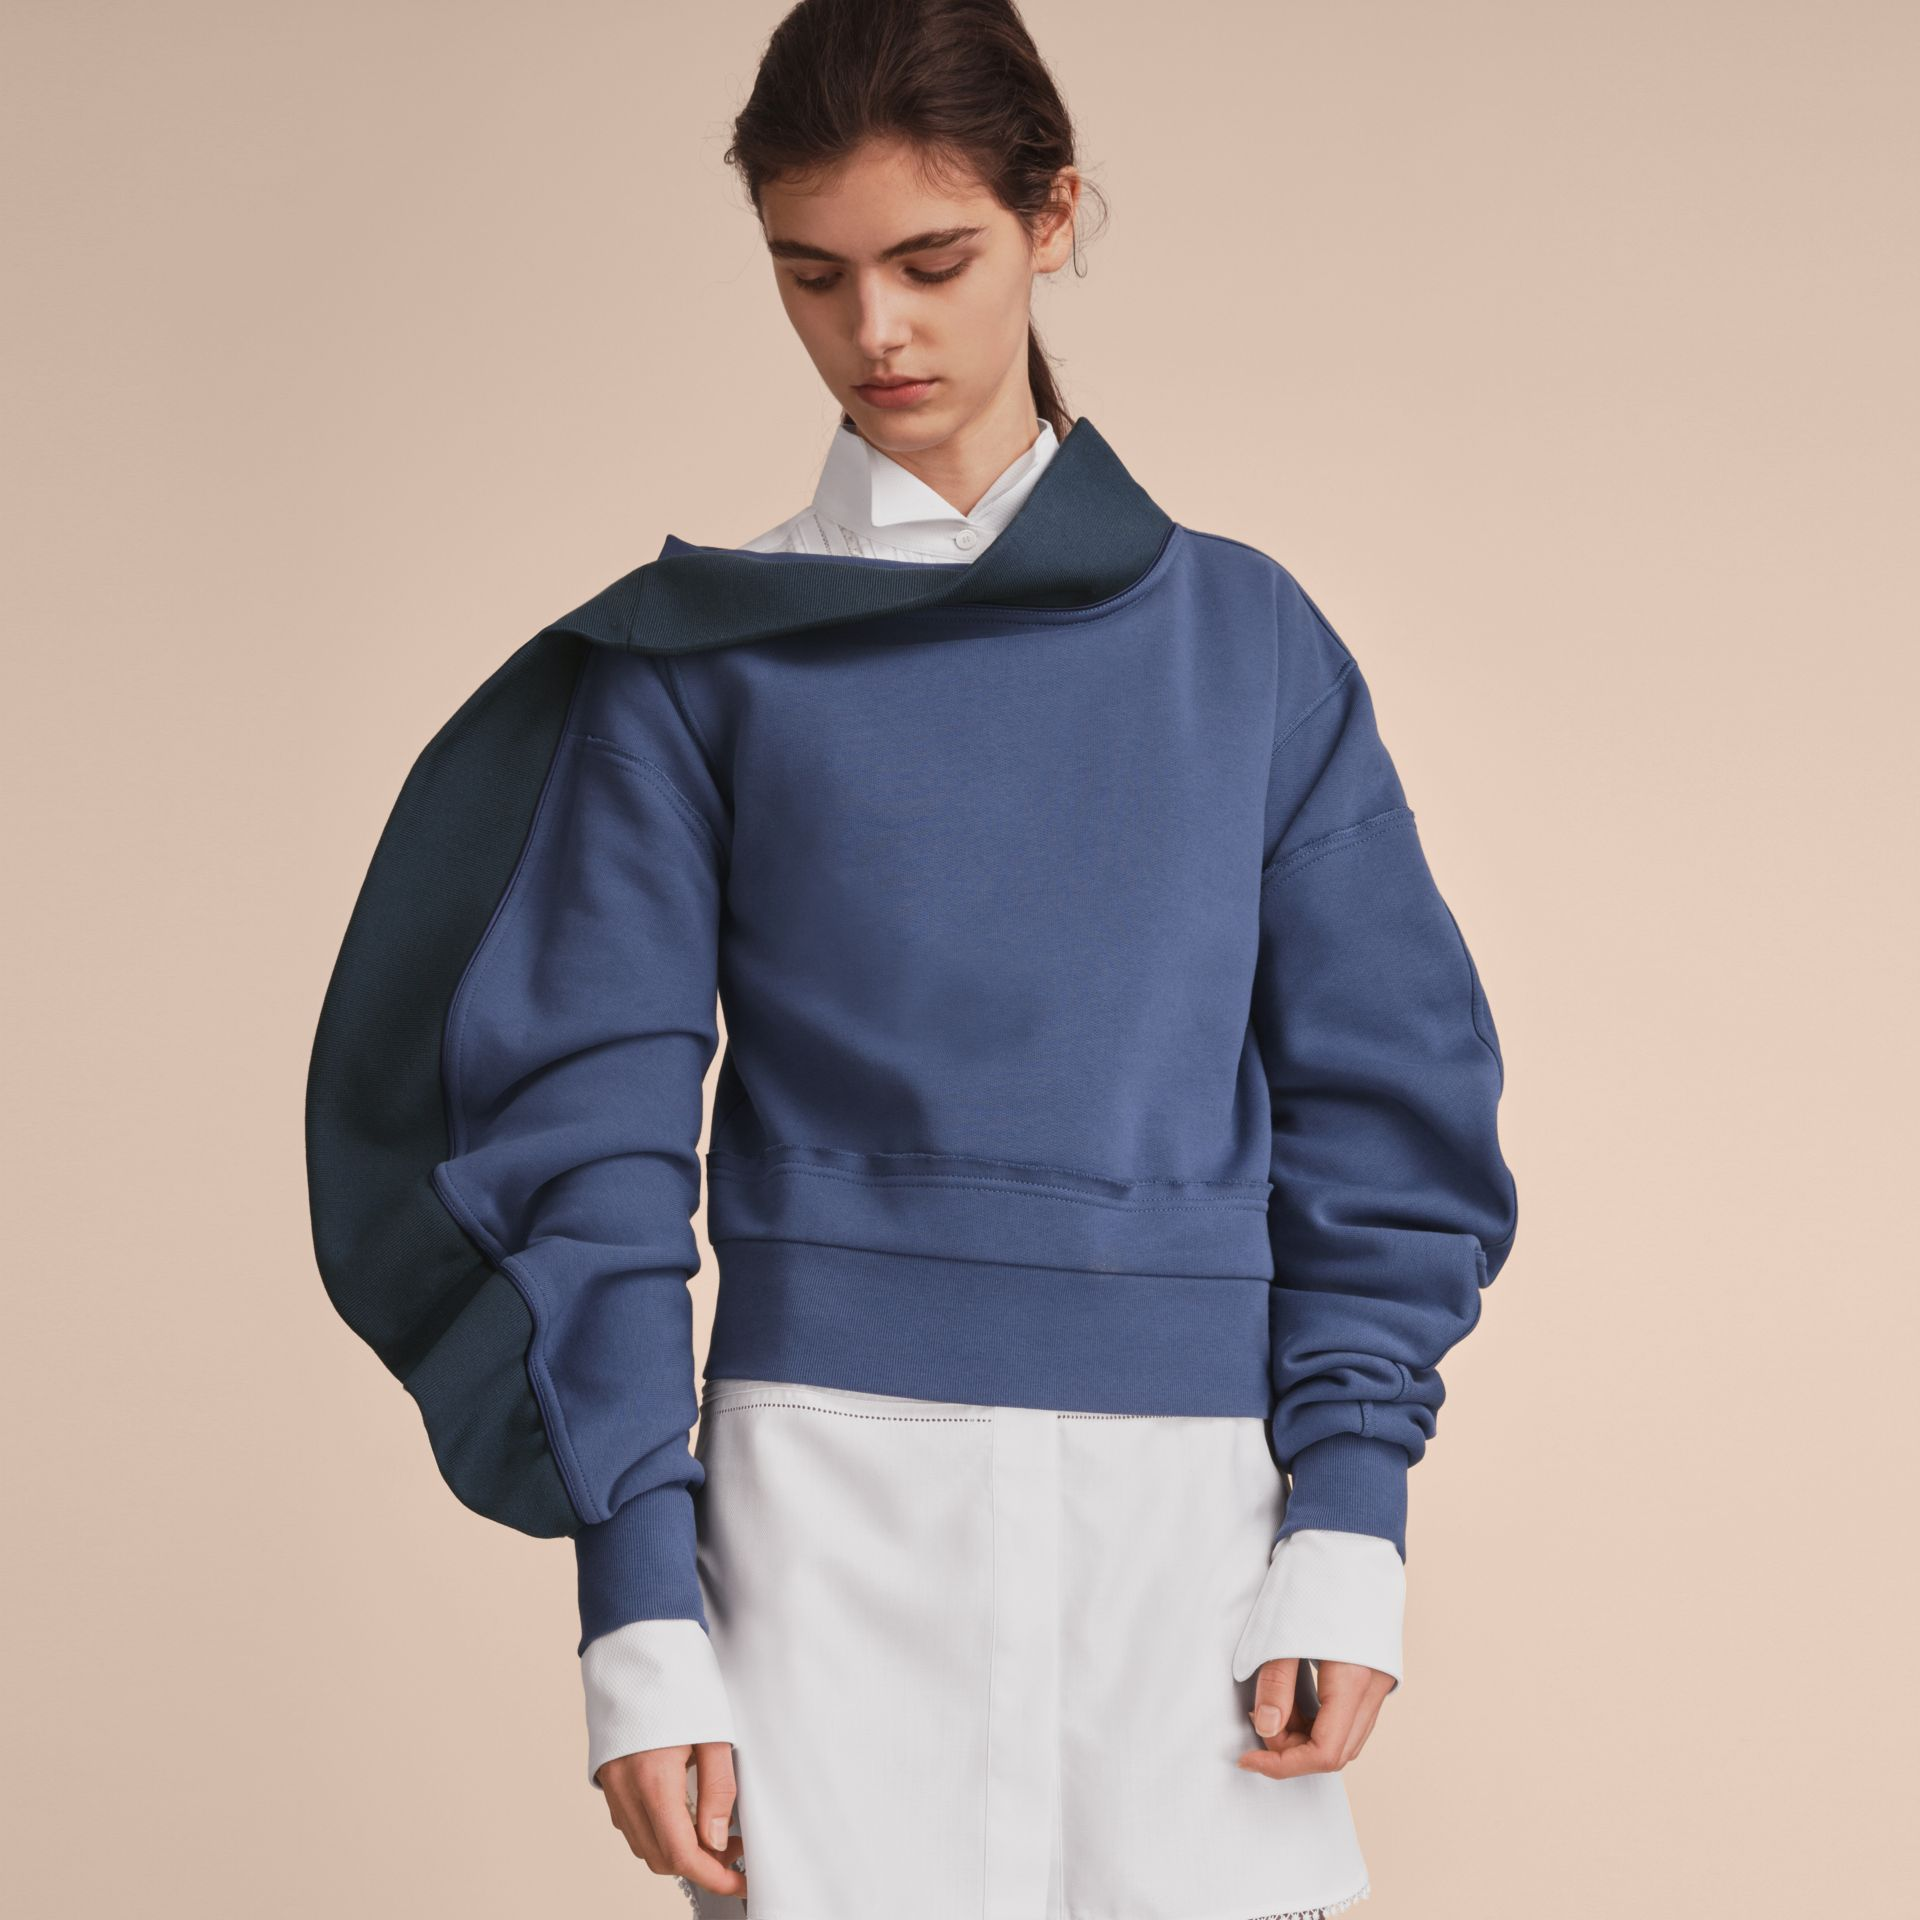 Sculptured-sleeve Asymmetric Sweatshirt Pewter Blue - gallery image 6